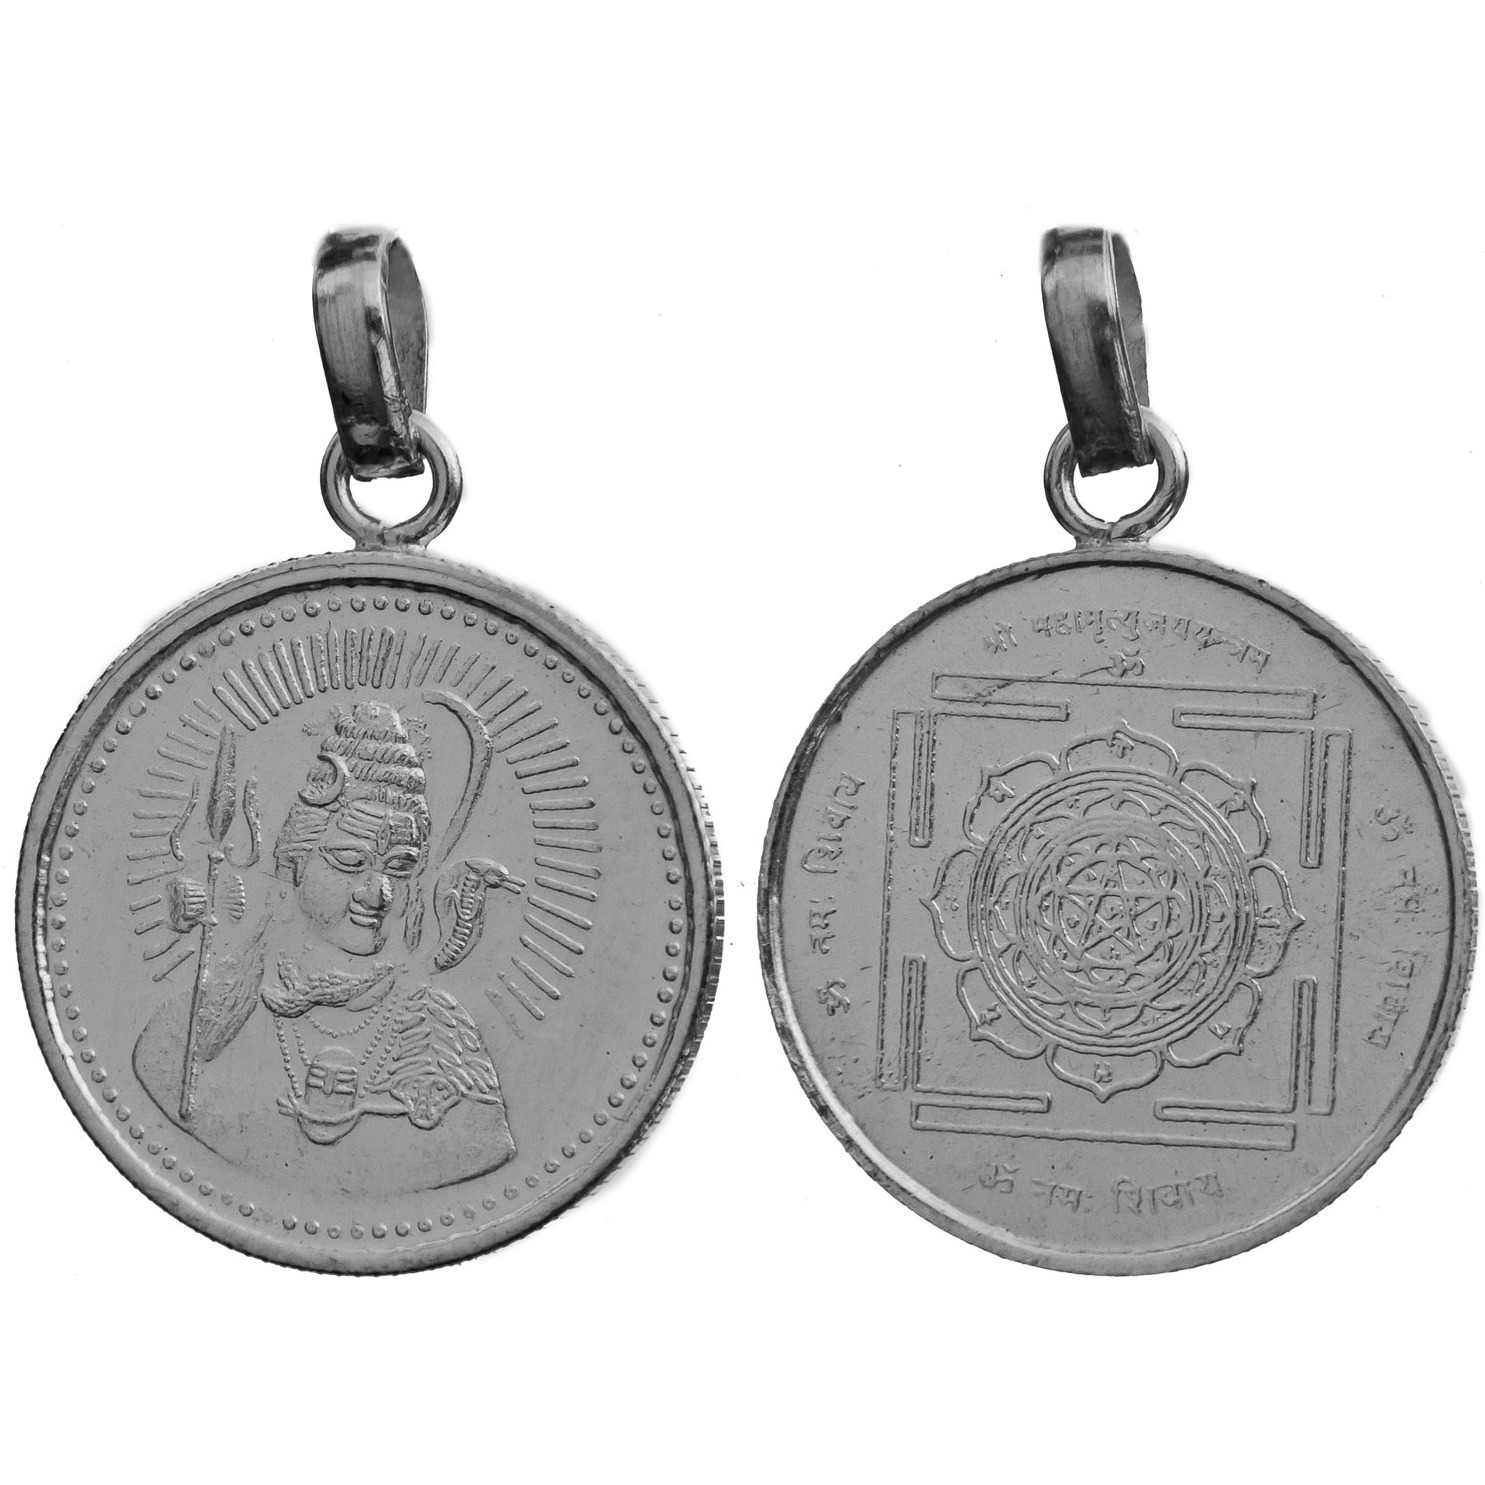 Lord Shiva Pendant with Maha Mrityunjay Yantra on Reverse (Protection from Death)